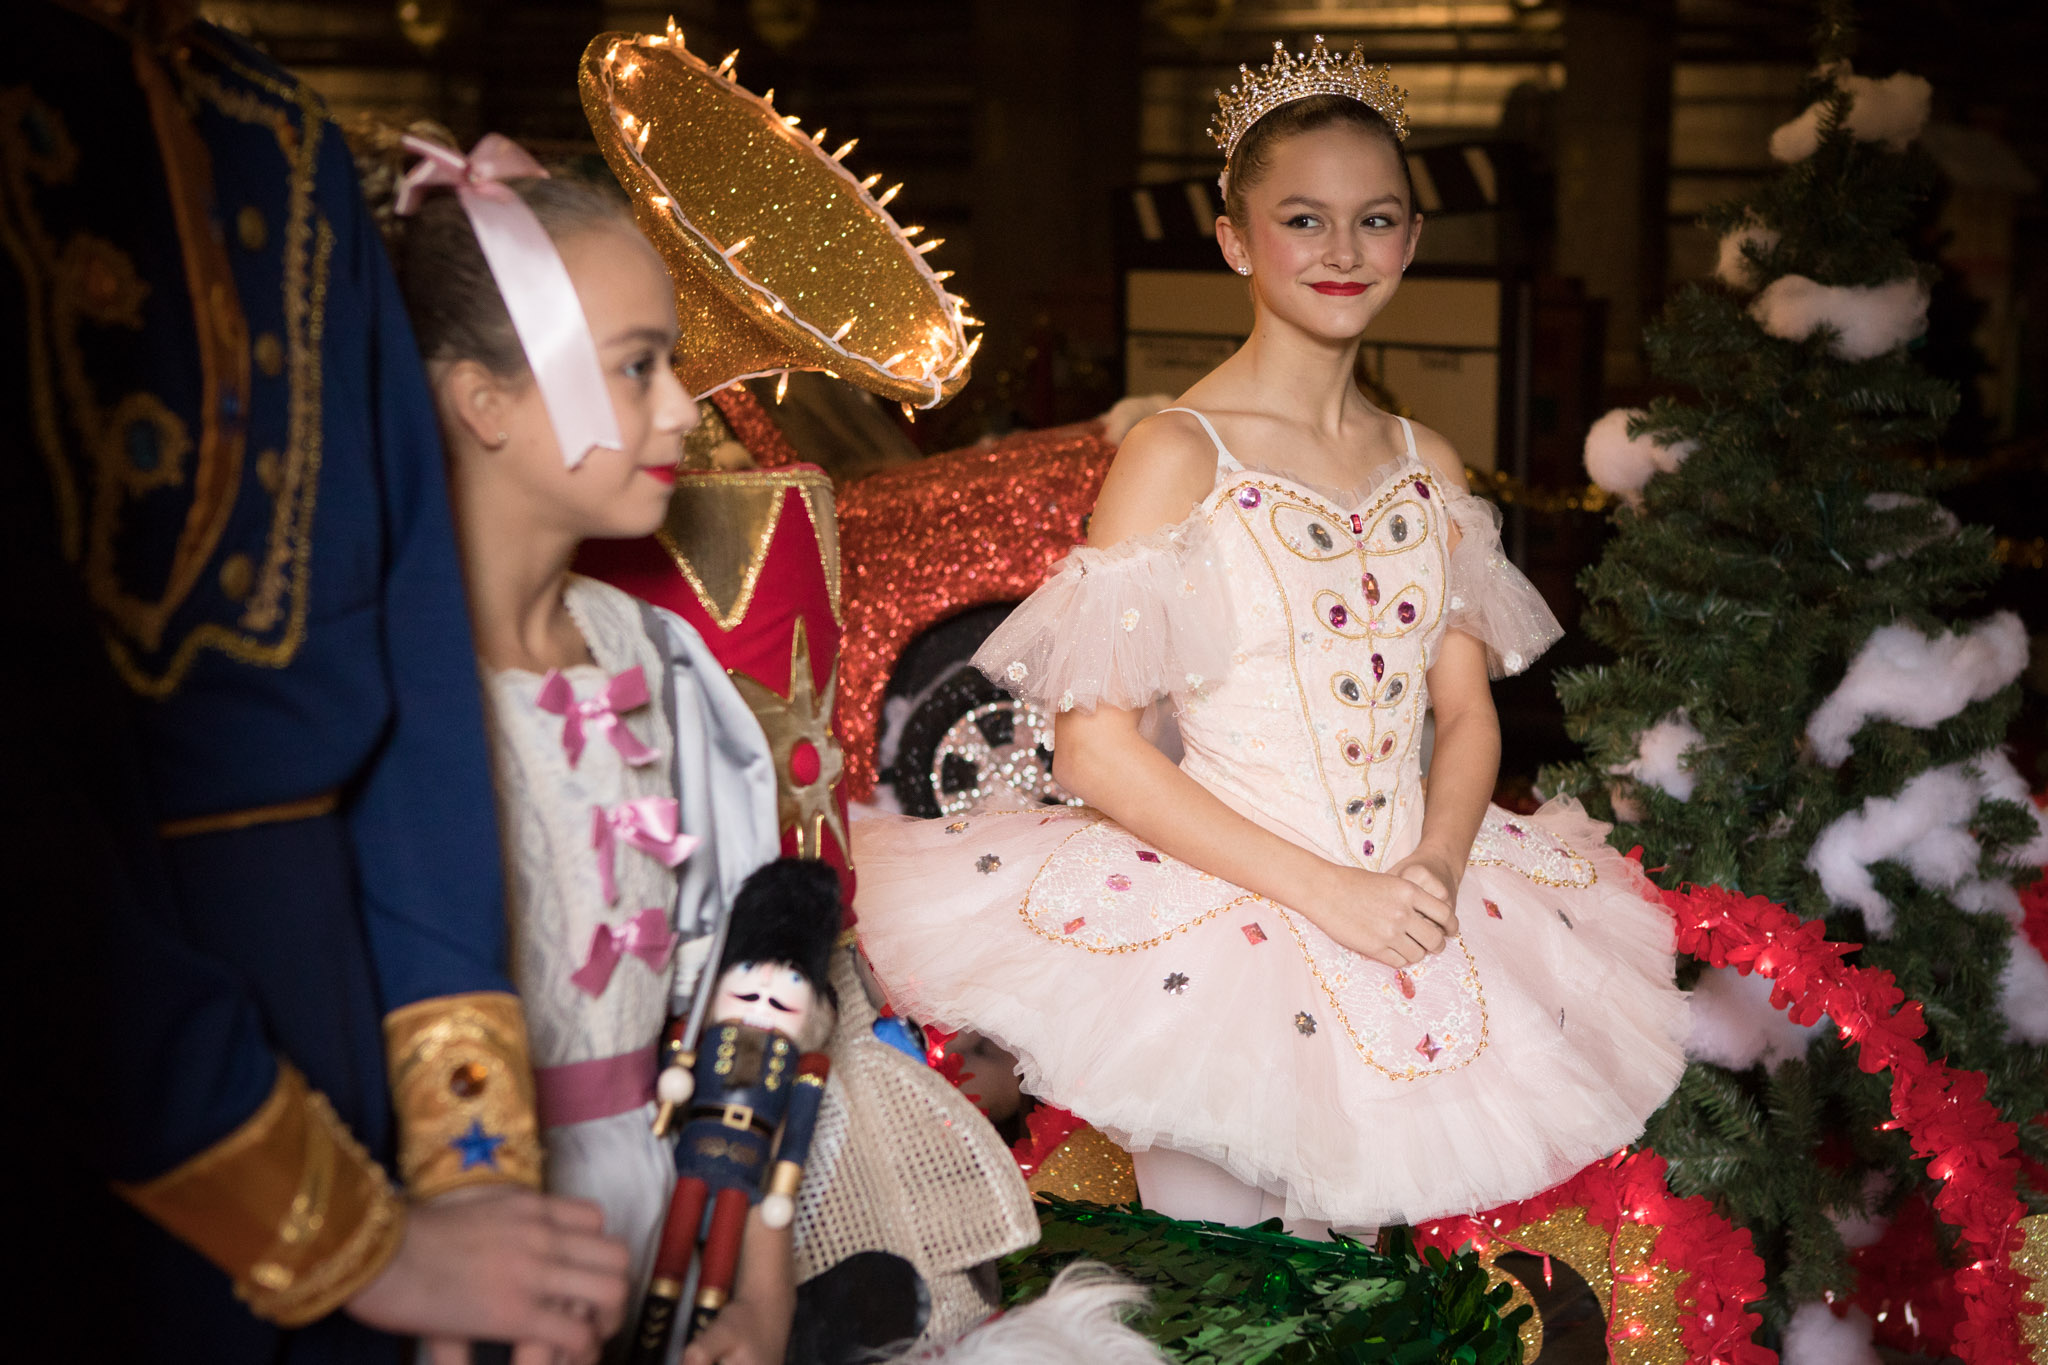 Madeleine Burroughs, 13, a dancer in the Alamo City Dance Company, stands on the Nutcracker barge in preparation for the Ford Holiday River Parade.